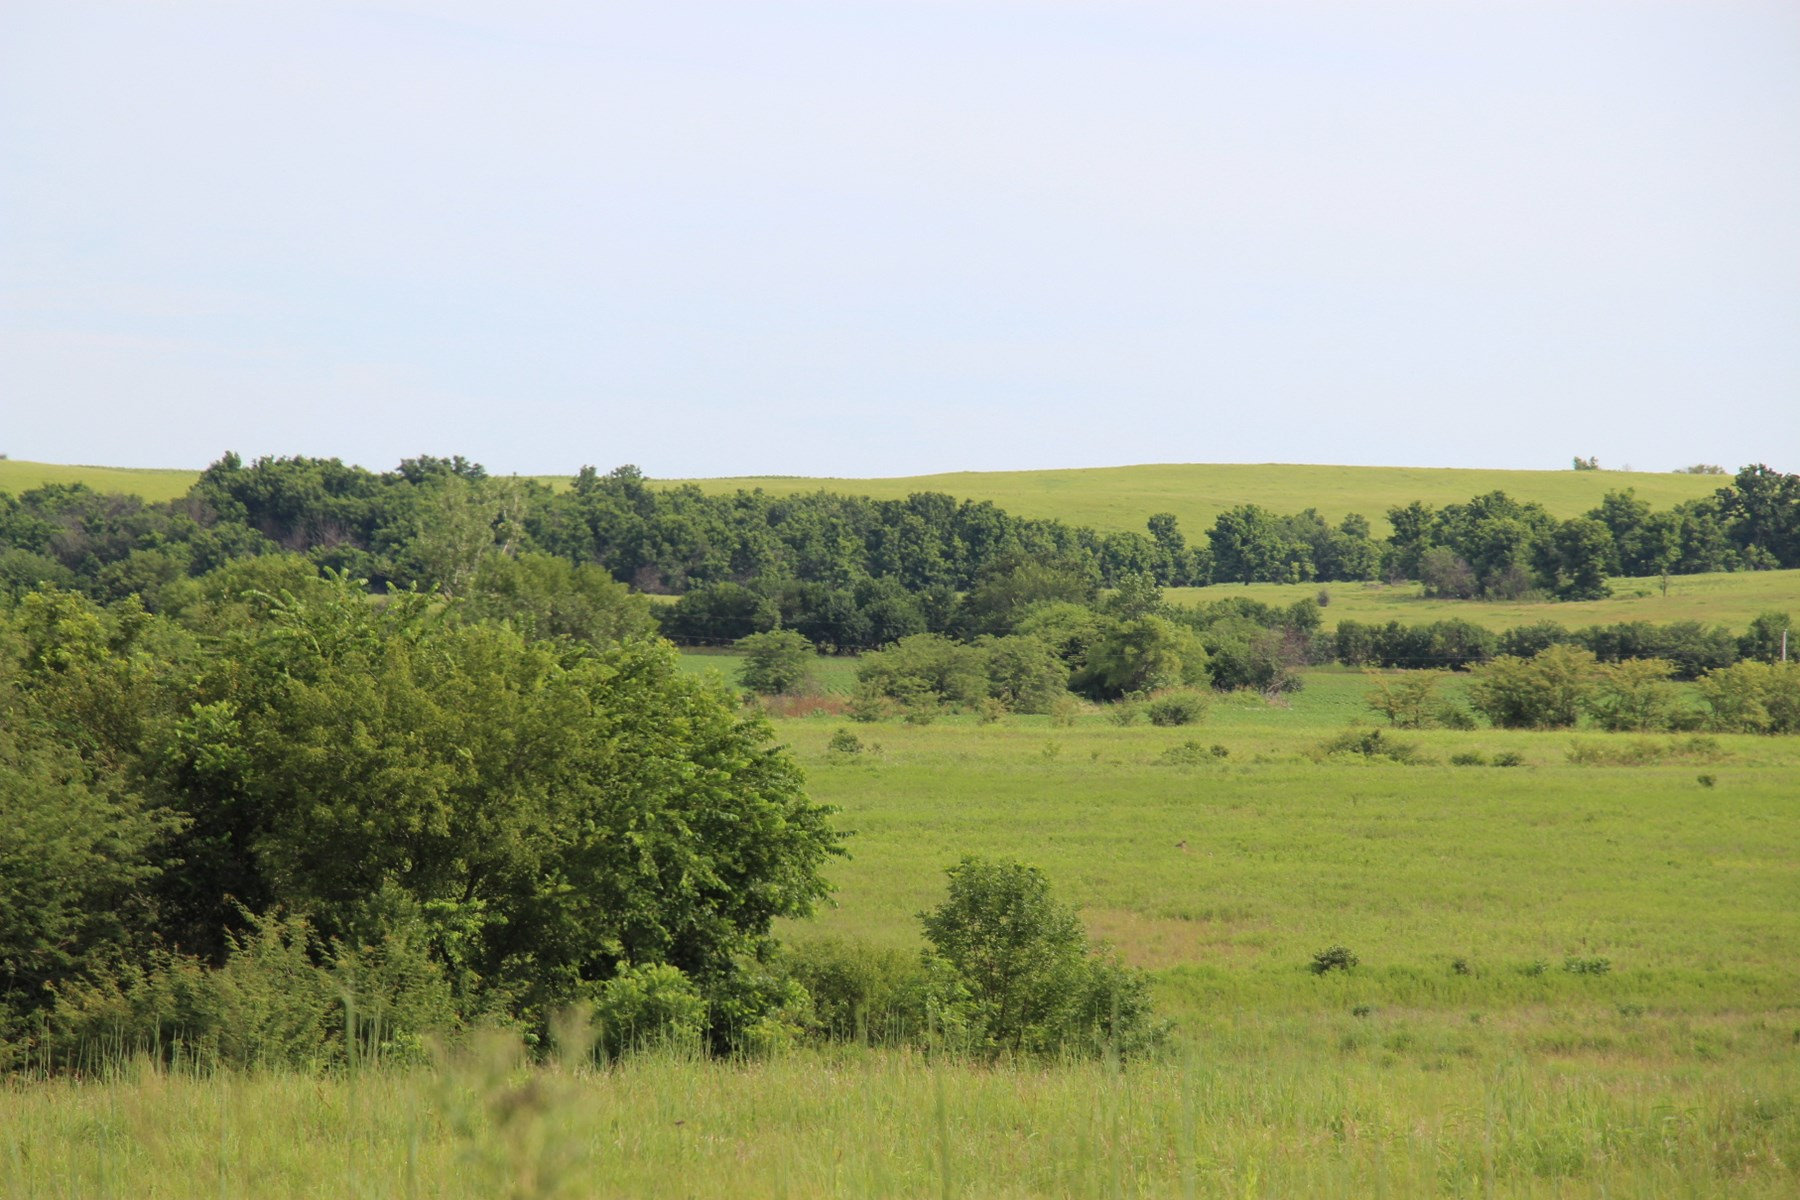 160 Acres Hunting, Pasture, Farm & CRP Land Southeast Kansas